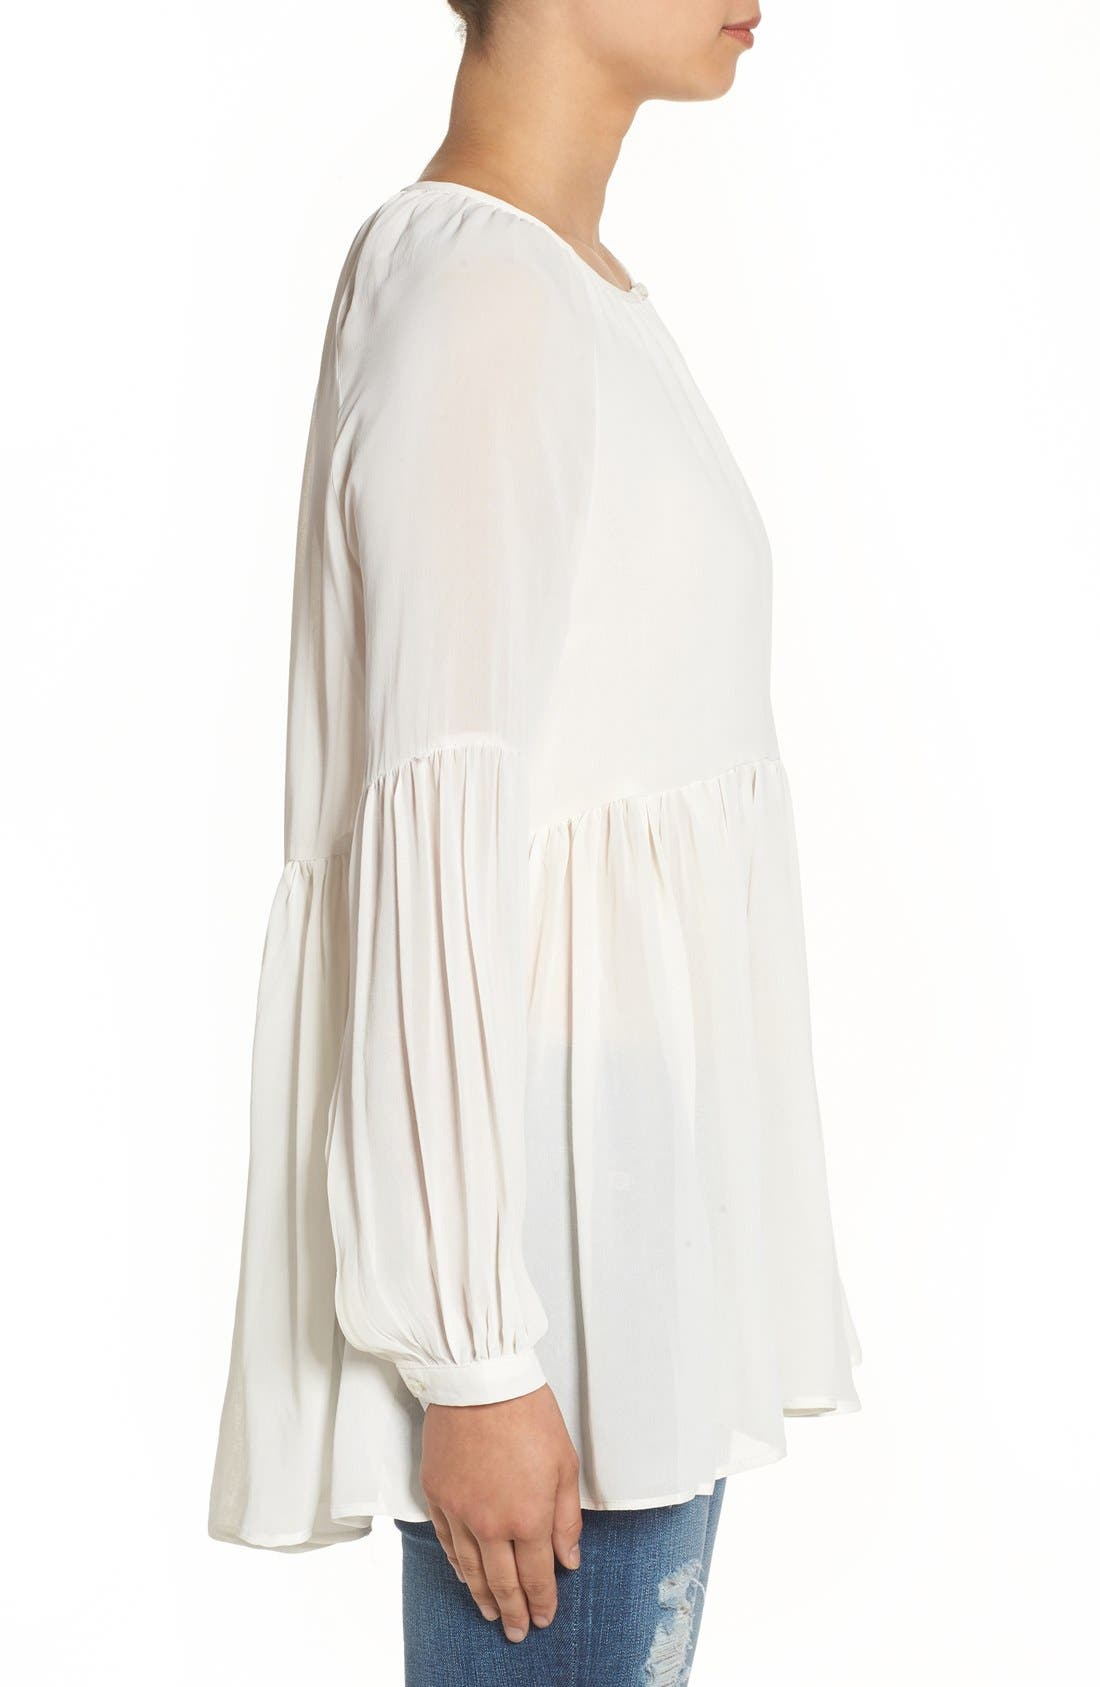 Alternate Image 3  - Sincerely Jules 'Cameron' Chiffon Blouse